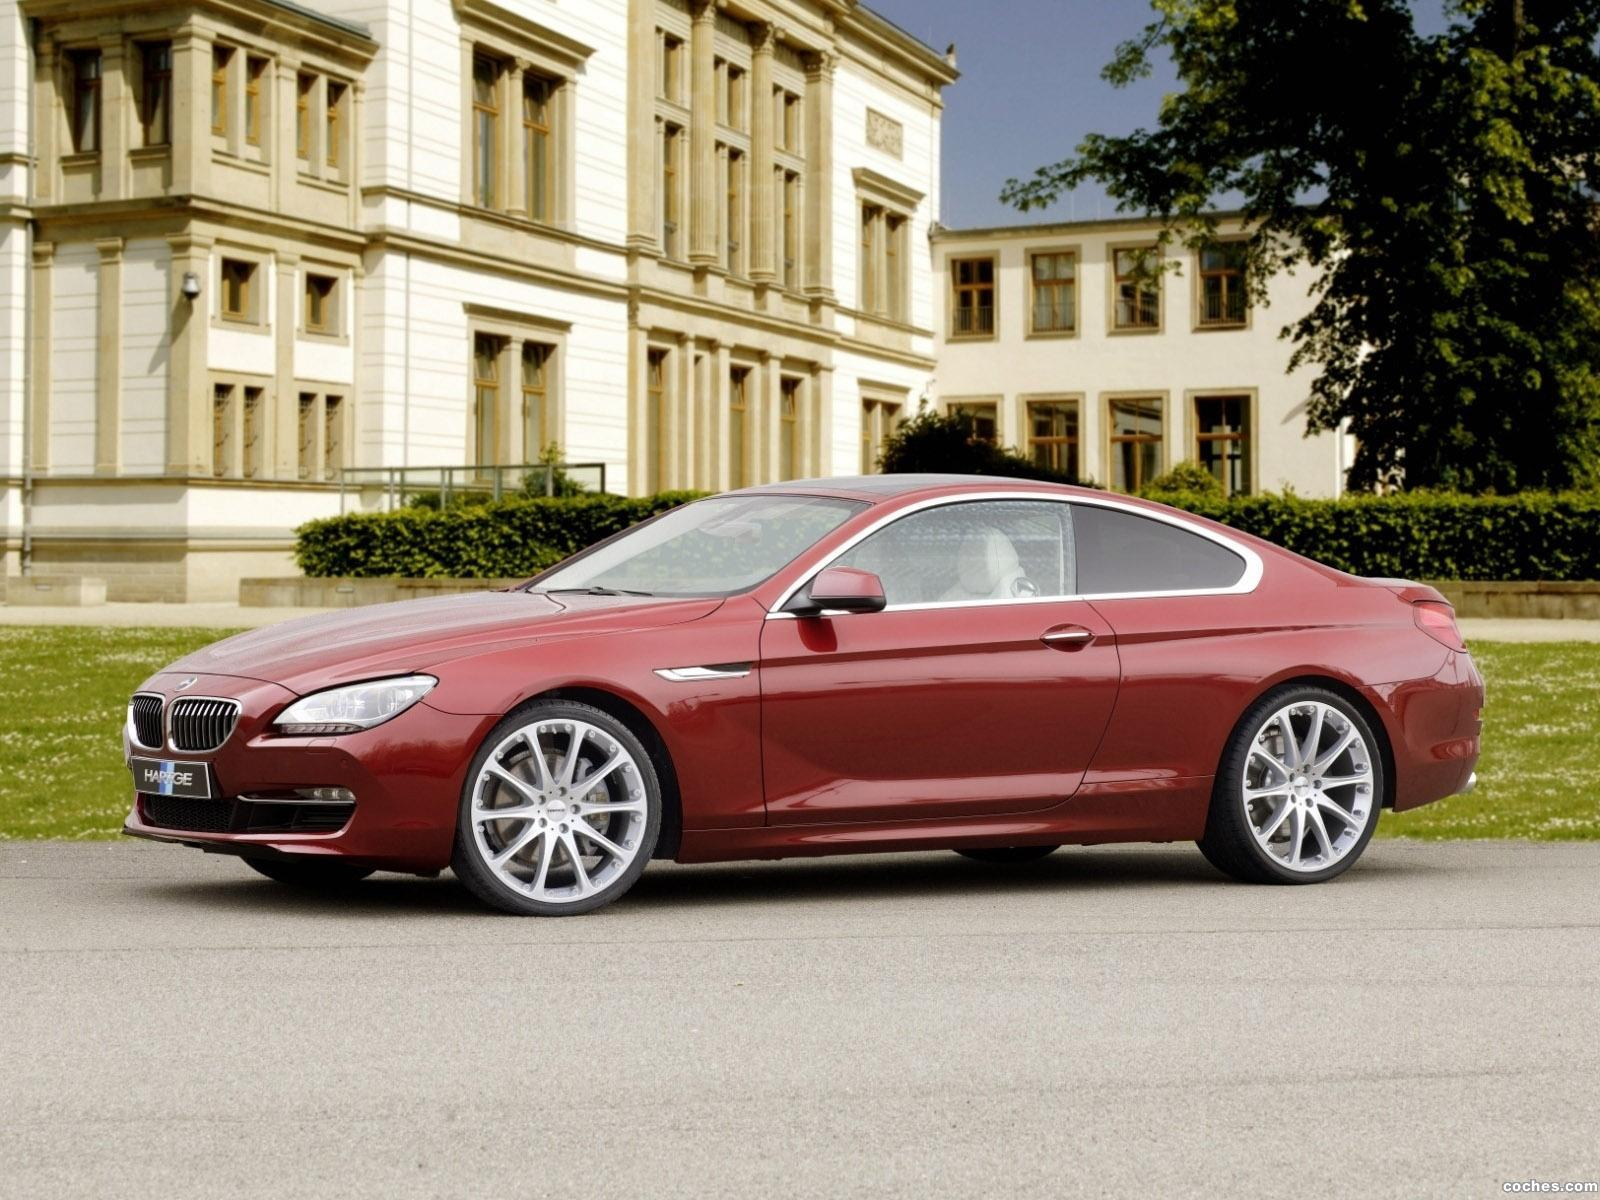 hartge_bmw-6-series-coupe-2012_r1